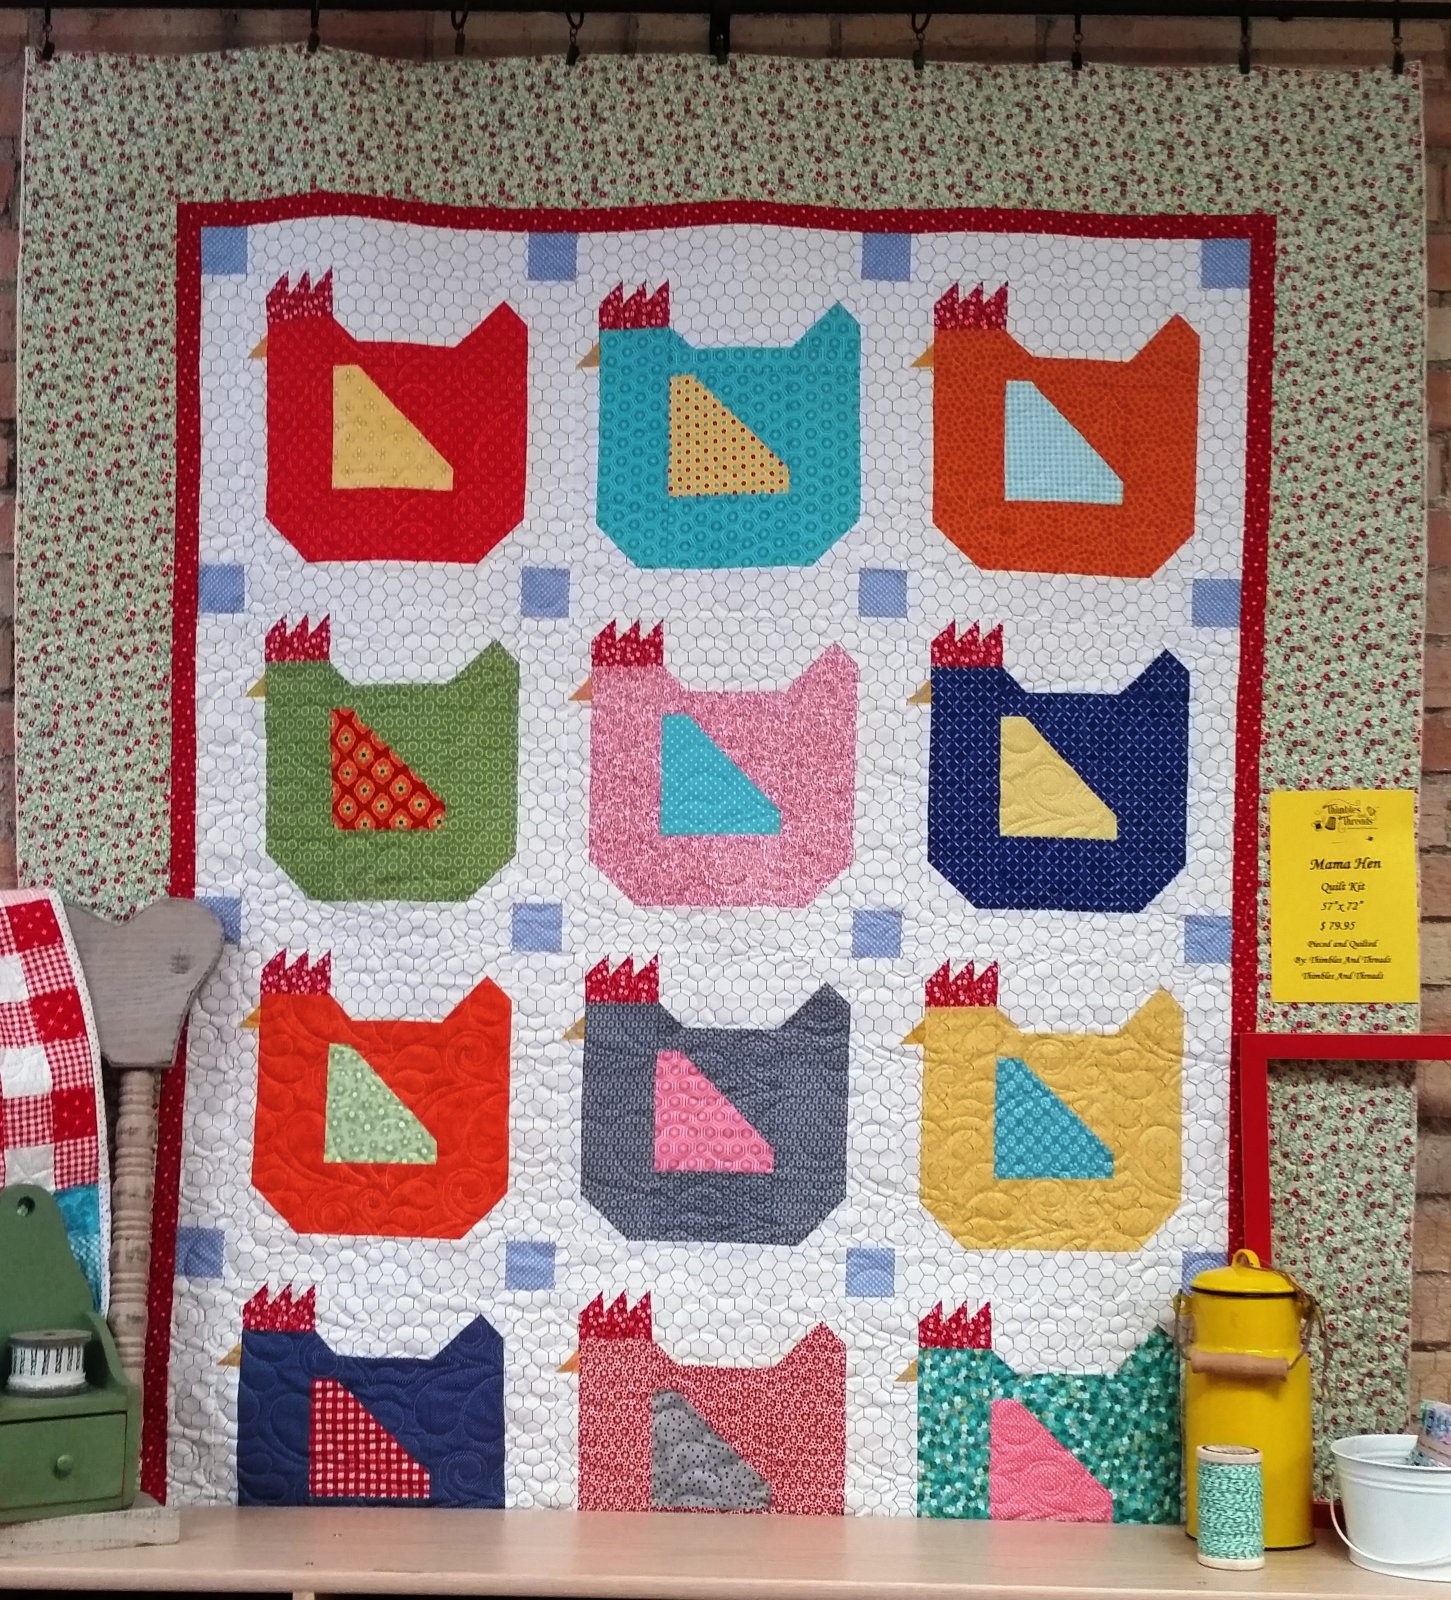 Lori holt 39 s fgv mama hen quilt kit - Quilt rits ...